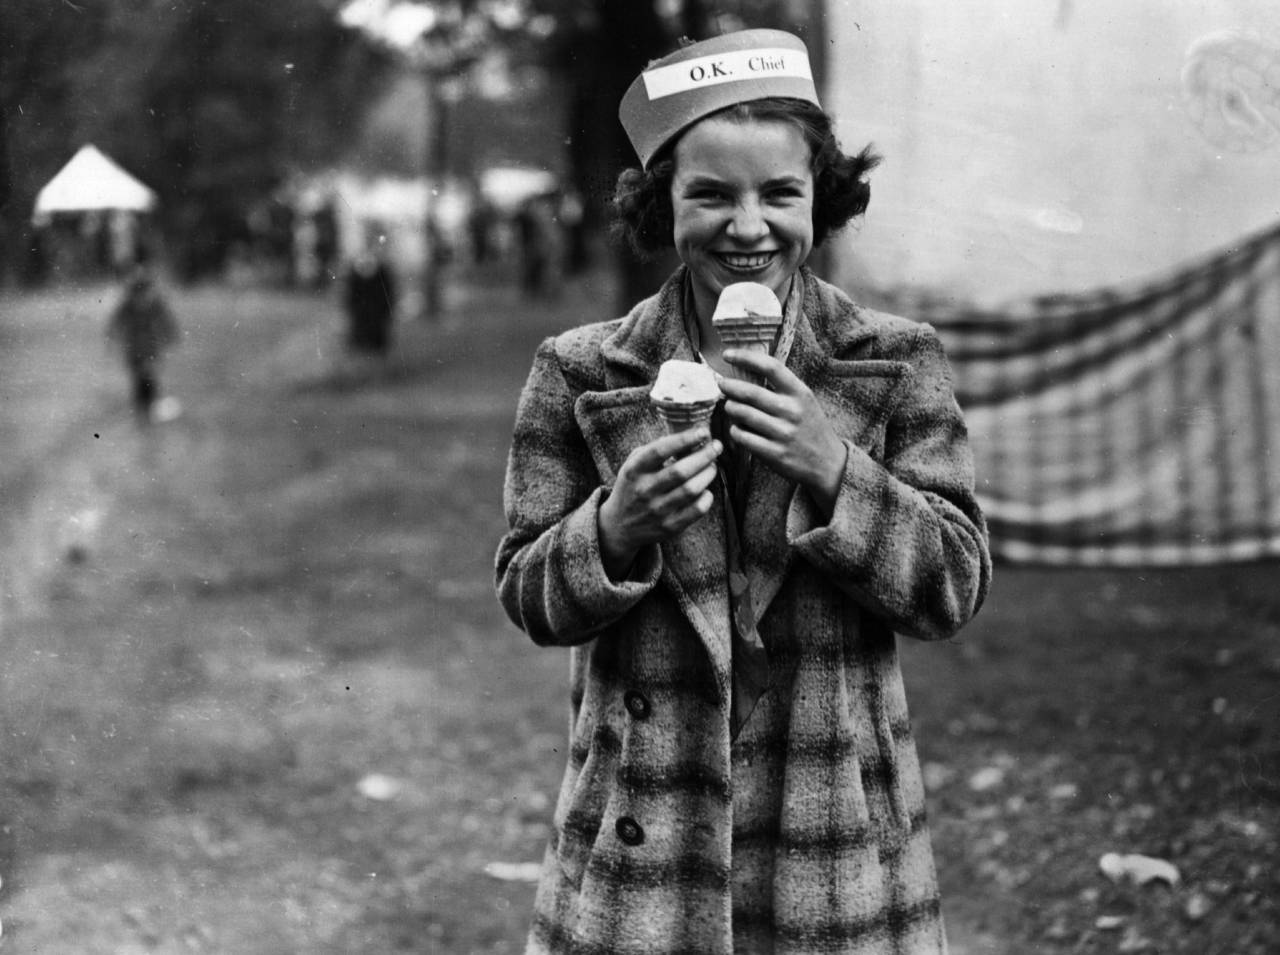 7th August 1939:  Eating two ices at once, or perhaps one is for her friend?  (Photo by Topical Press Agency/Getty Images)